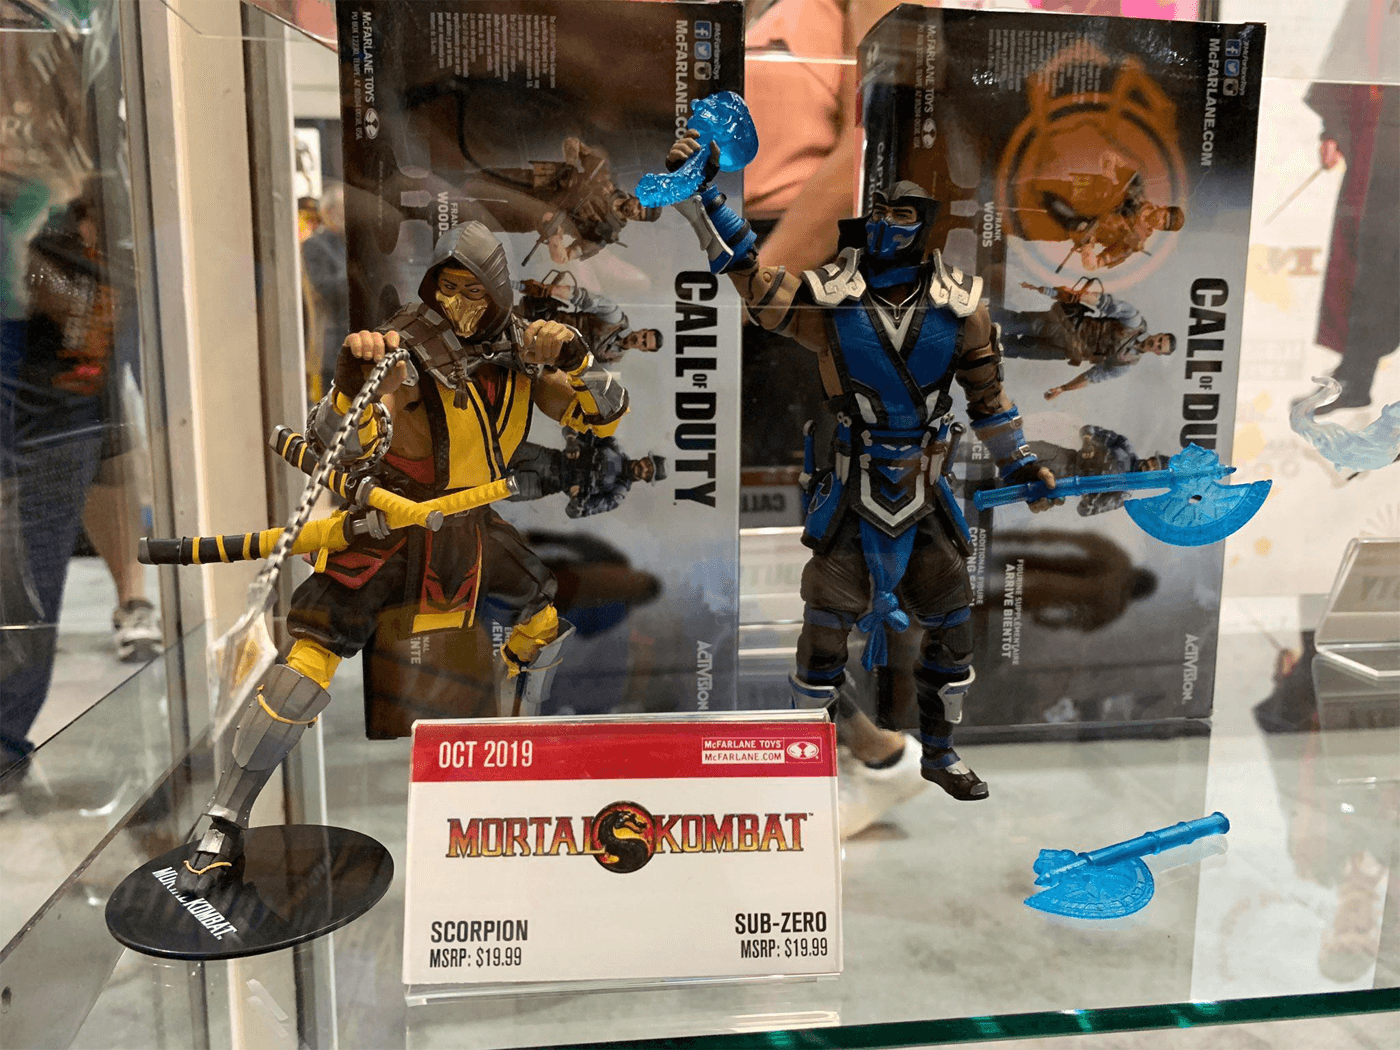 McFarlane Toys Invades San Diego Comic-Con with Mortal